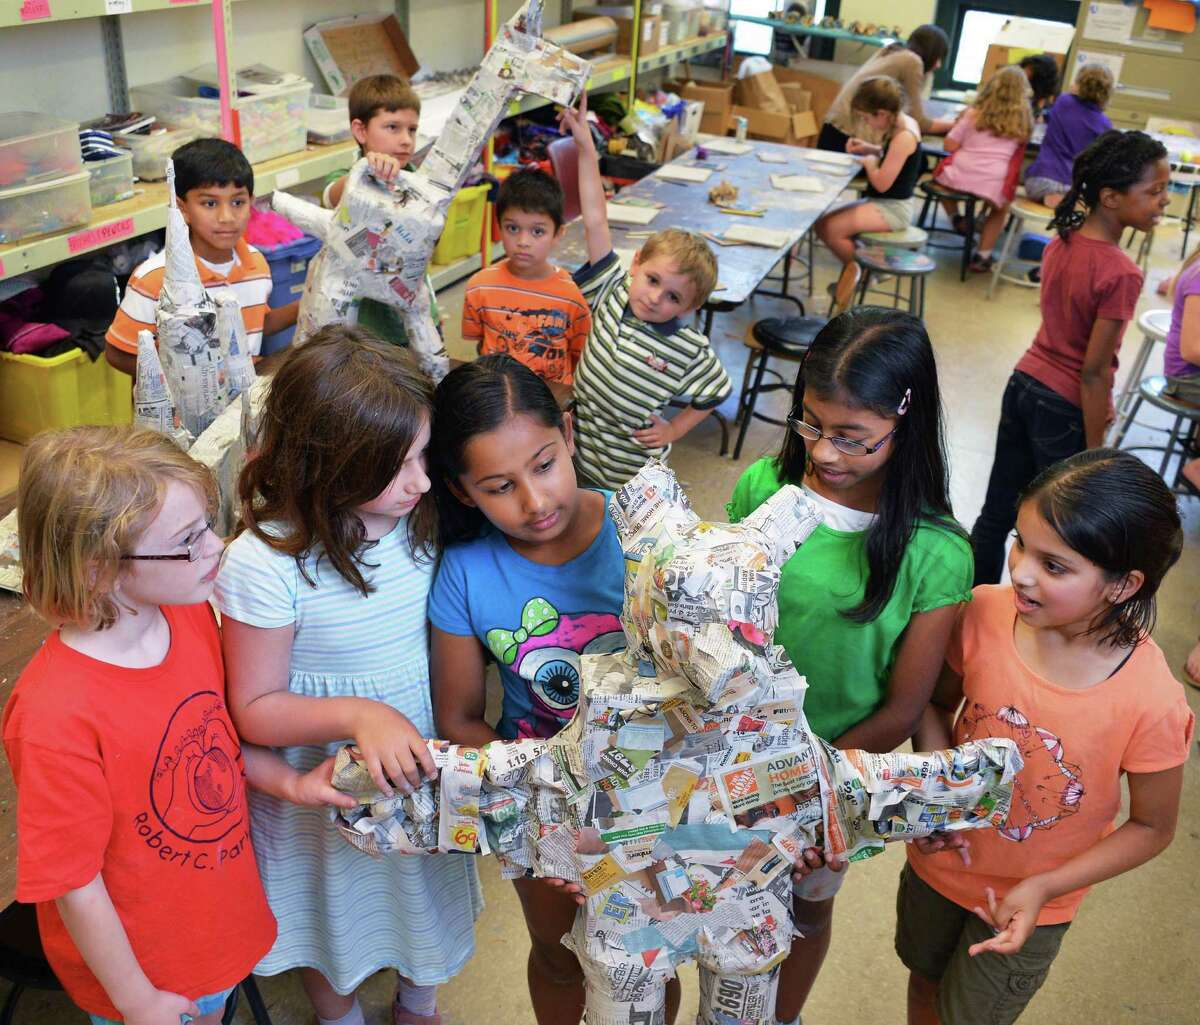 Summer arts campers paper mache sculptures at the Arts Center of the Capital Region in Troy Wednesday July 25, 2012. (John Carl D'Annibale / Times Union)